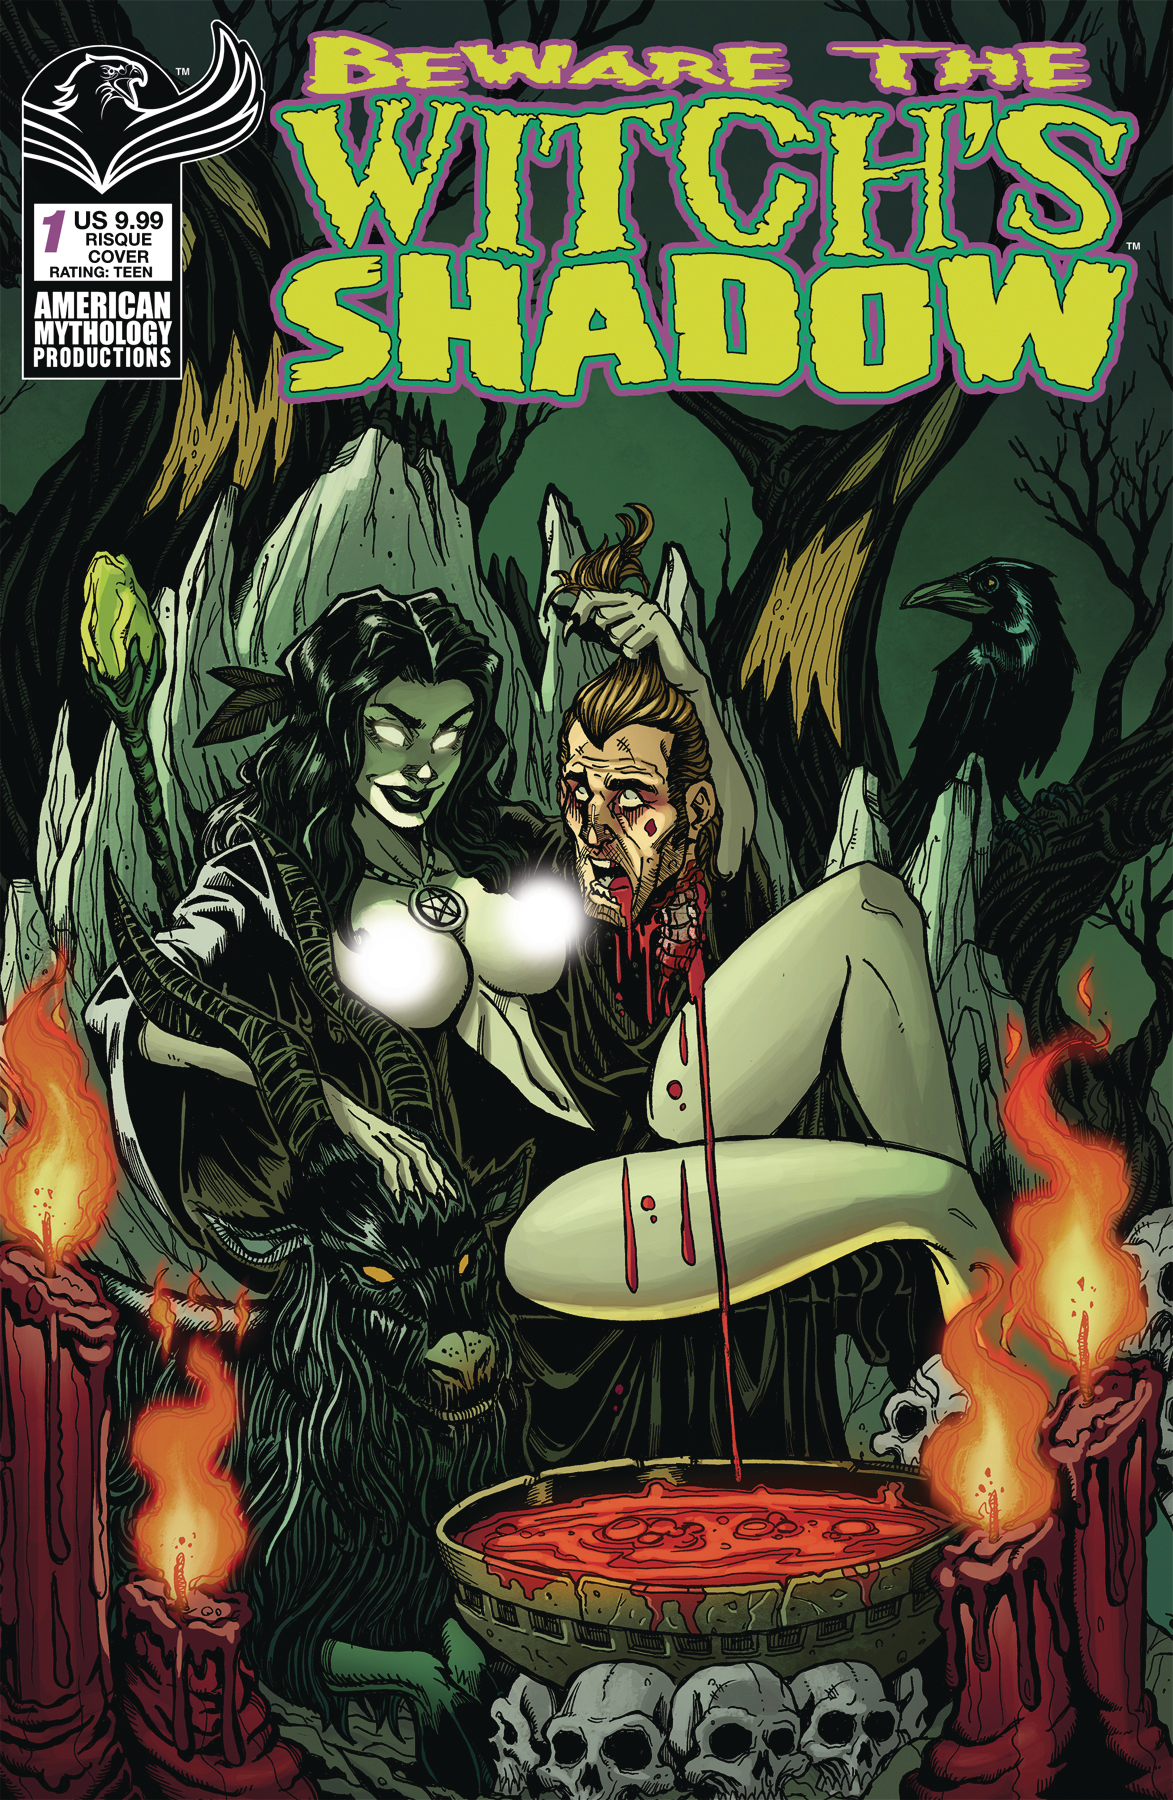 BEWARE THE WITCHS SHADOW #1 CVR C RISQUE (MR)